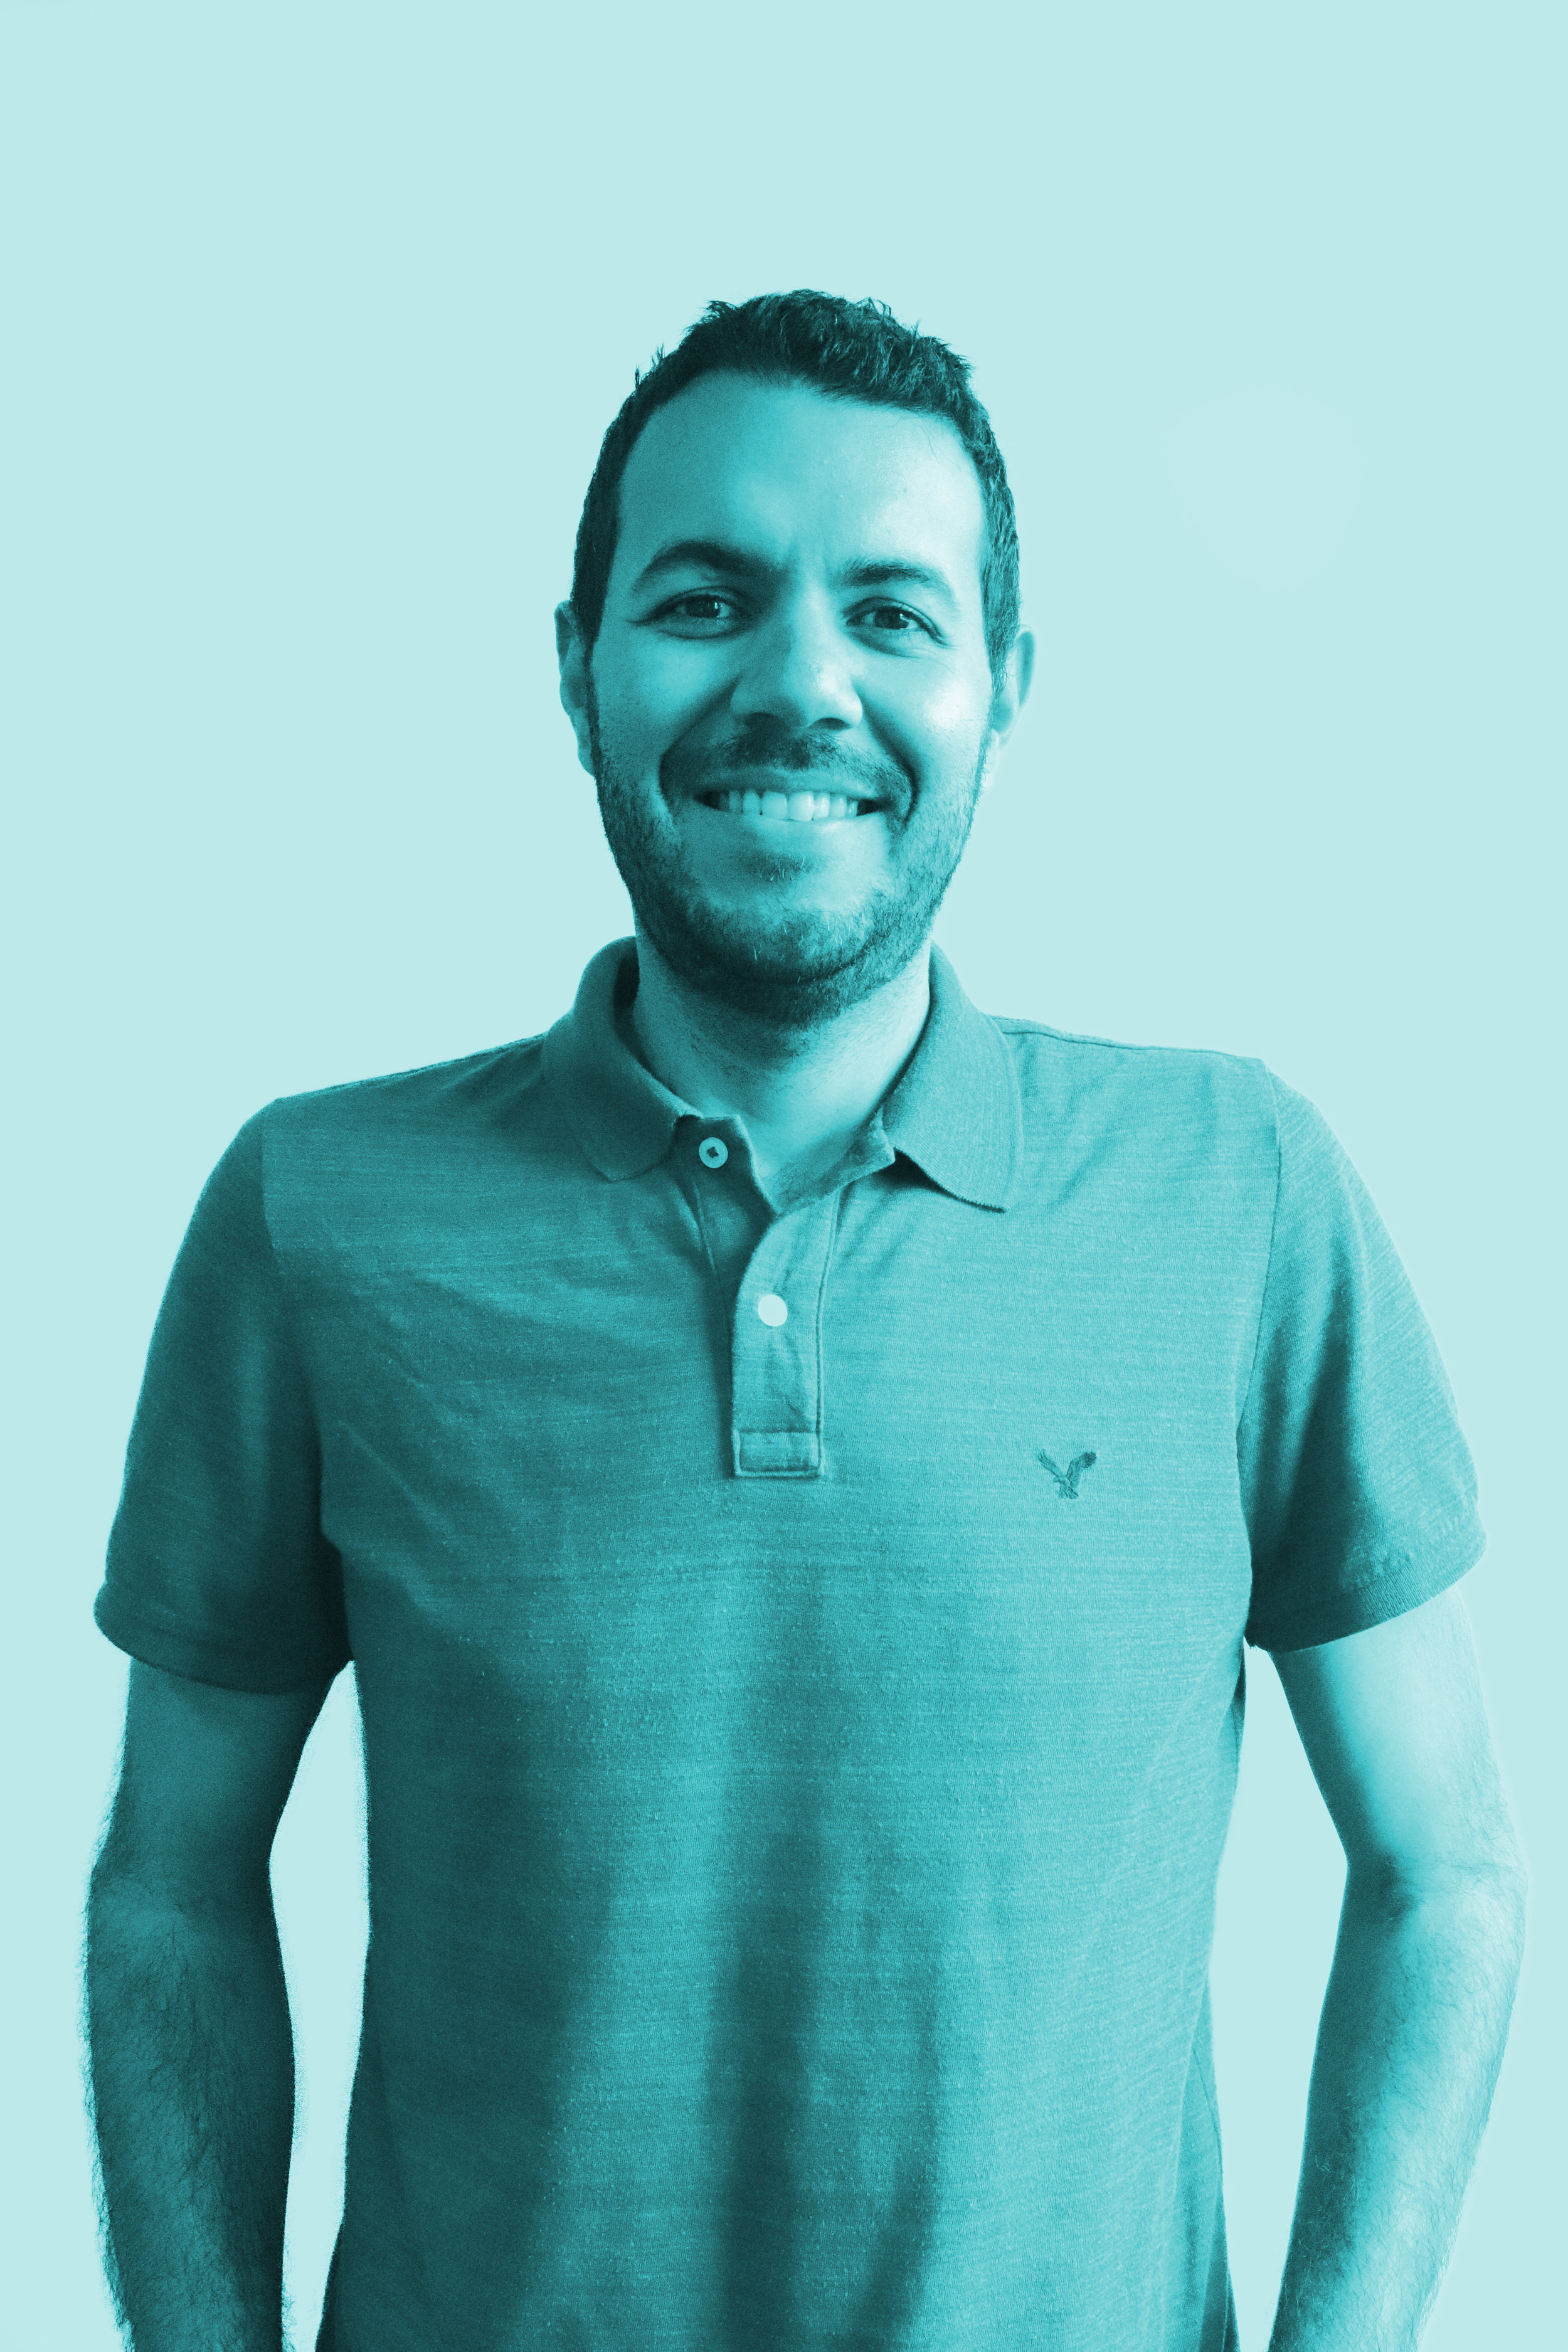 Fernando - Fernando is a photographer and filmmaker with a background in graphics design and marketing. You'd think he's busy enough, but he spends all his spare time sharing his knowledge of Spanish to others.